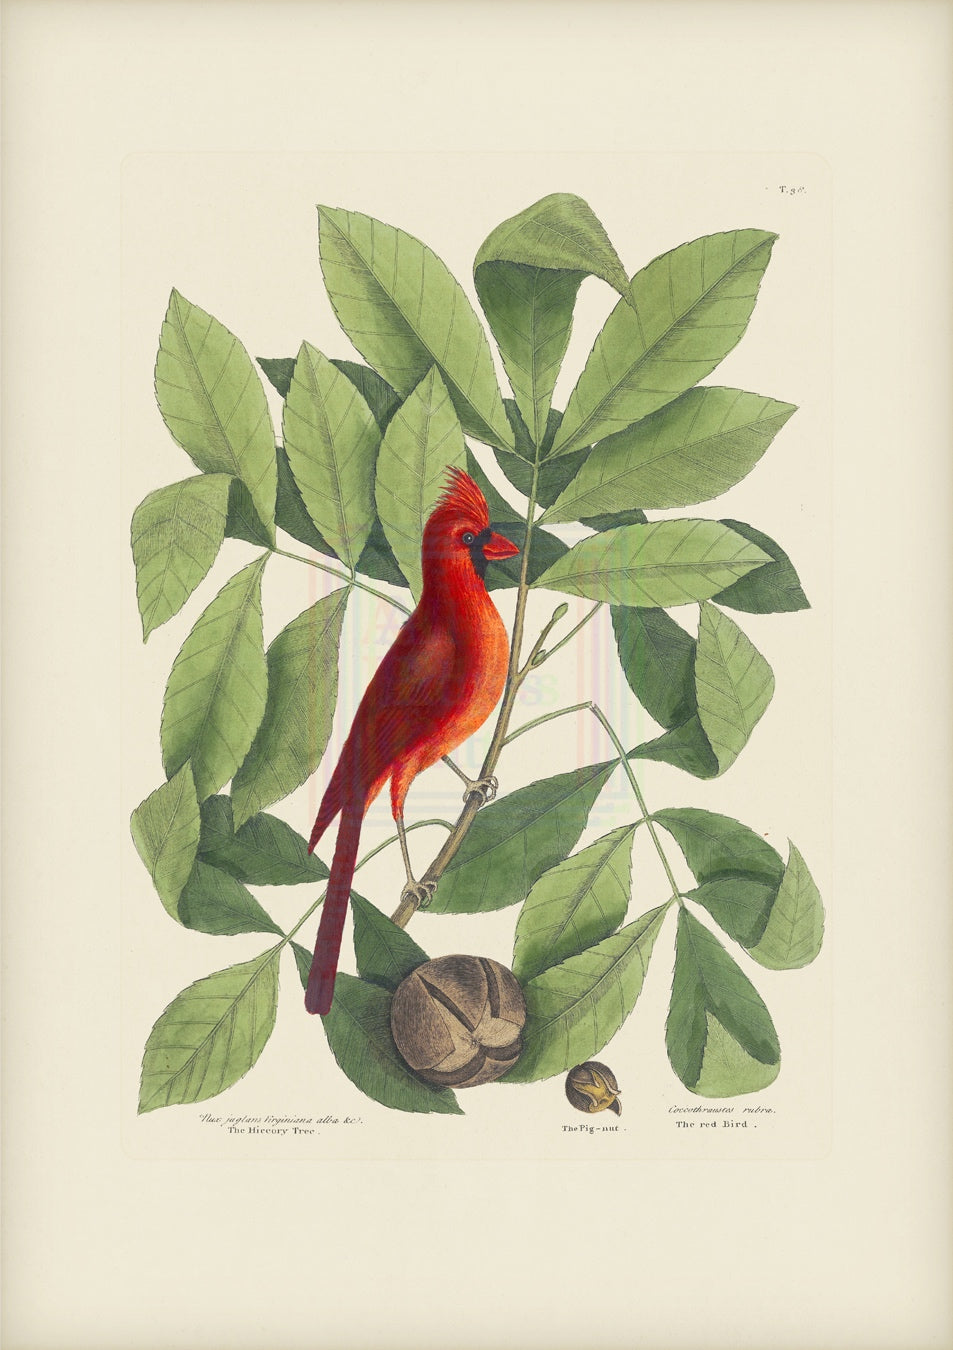 Mark Catesby Print, Red Bird - Plate 38